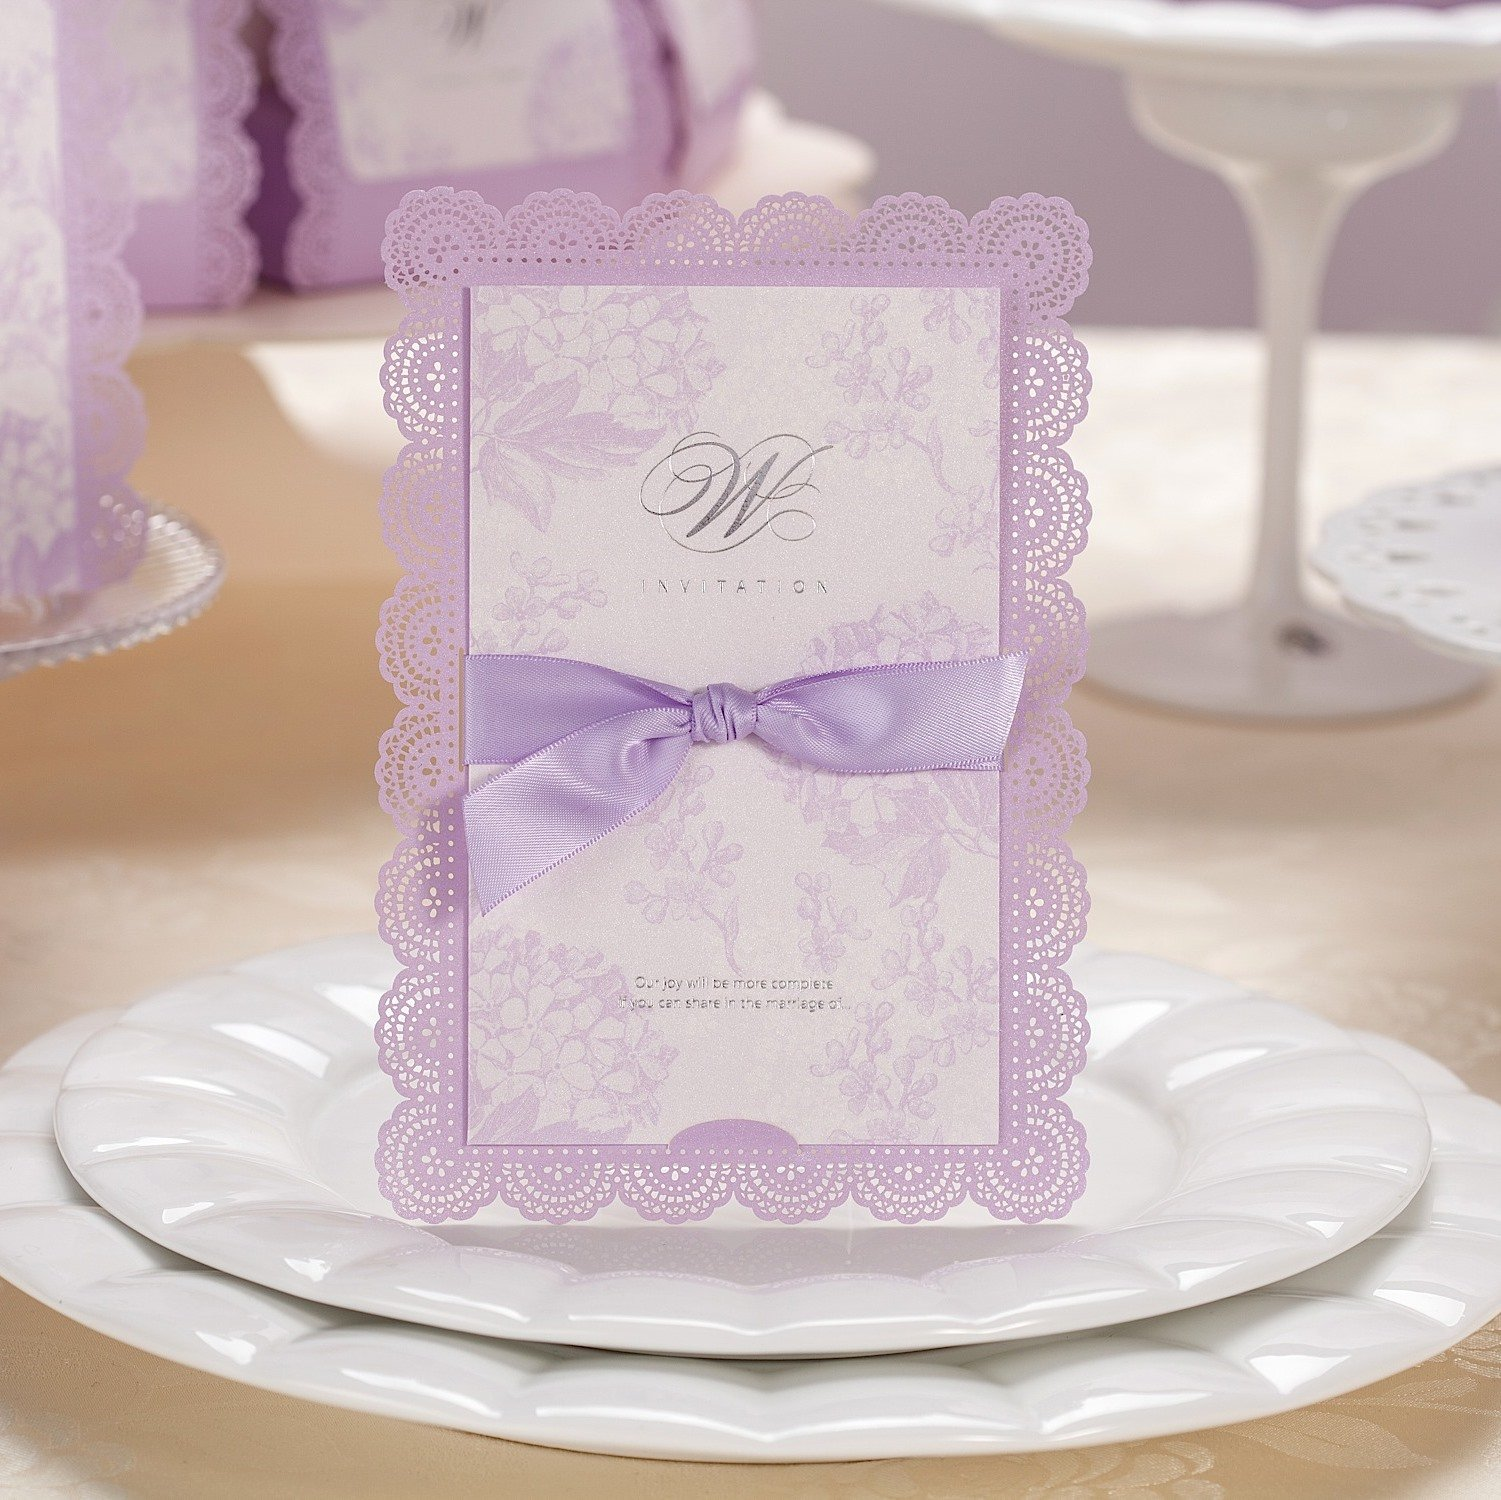 Wishmade Elegant Purple Laser Cut Wedding Invitations Cards Bridal Shower Invitations Greeting Cards CW003 (50 pcs)